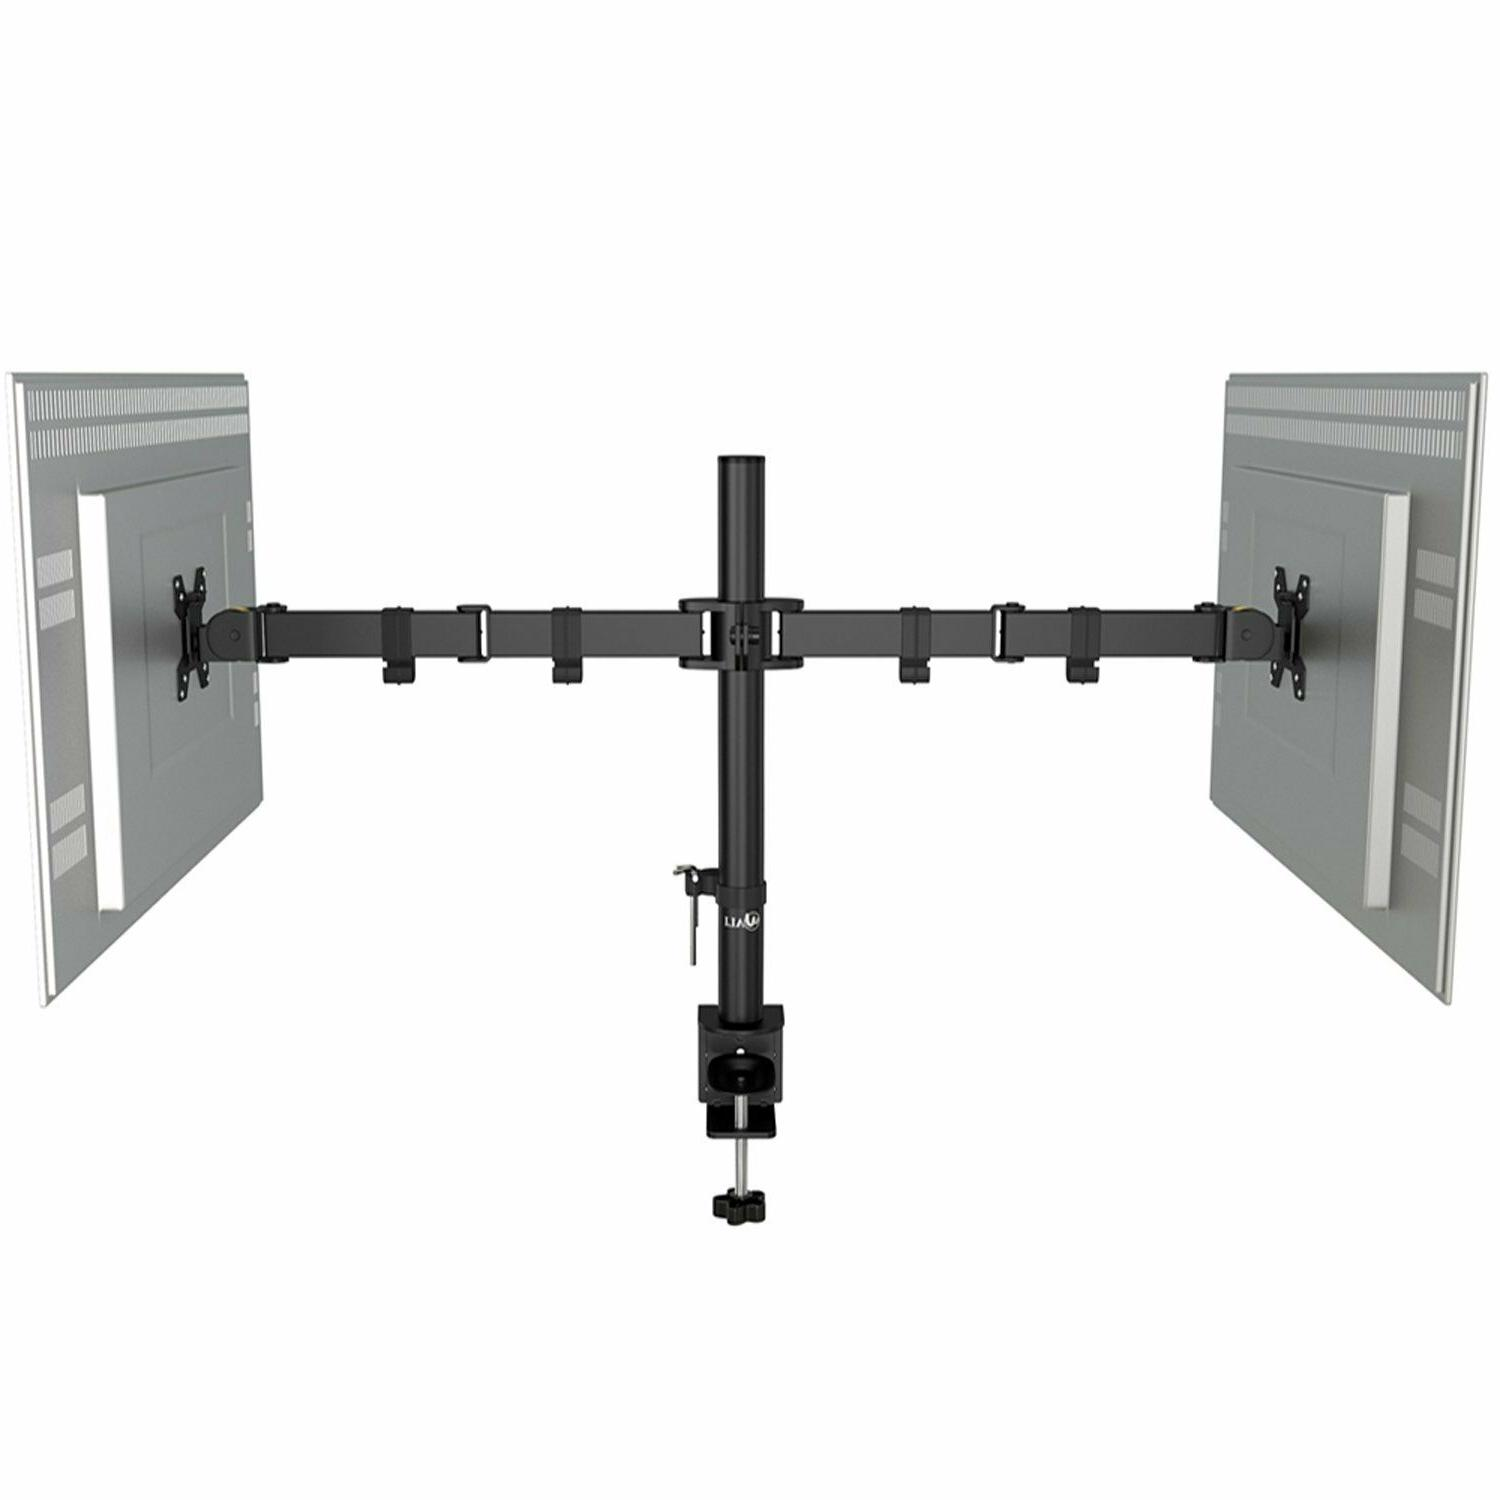 WALI Dual LCD Fully Adjustable Desk Stand Fits up